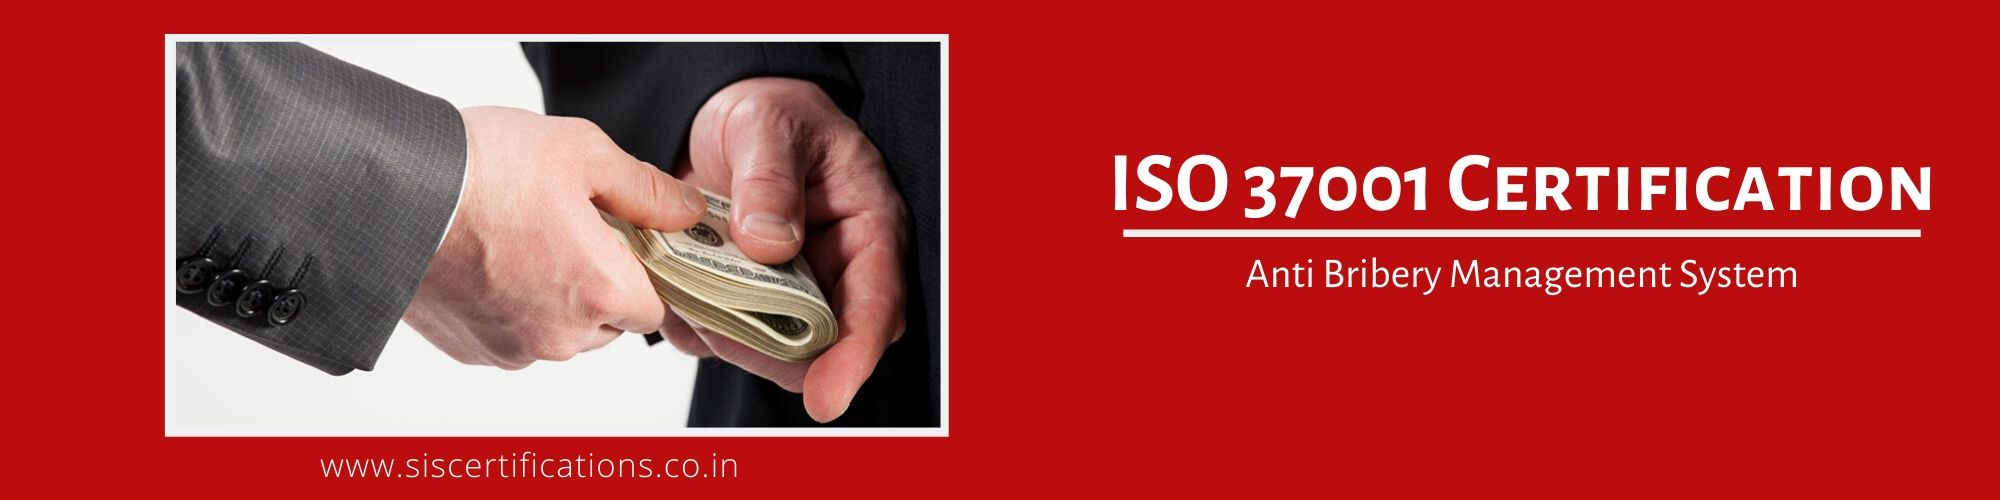 ISO 37001 Certification , ISO 37001 Certification